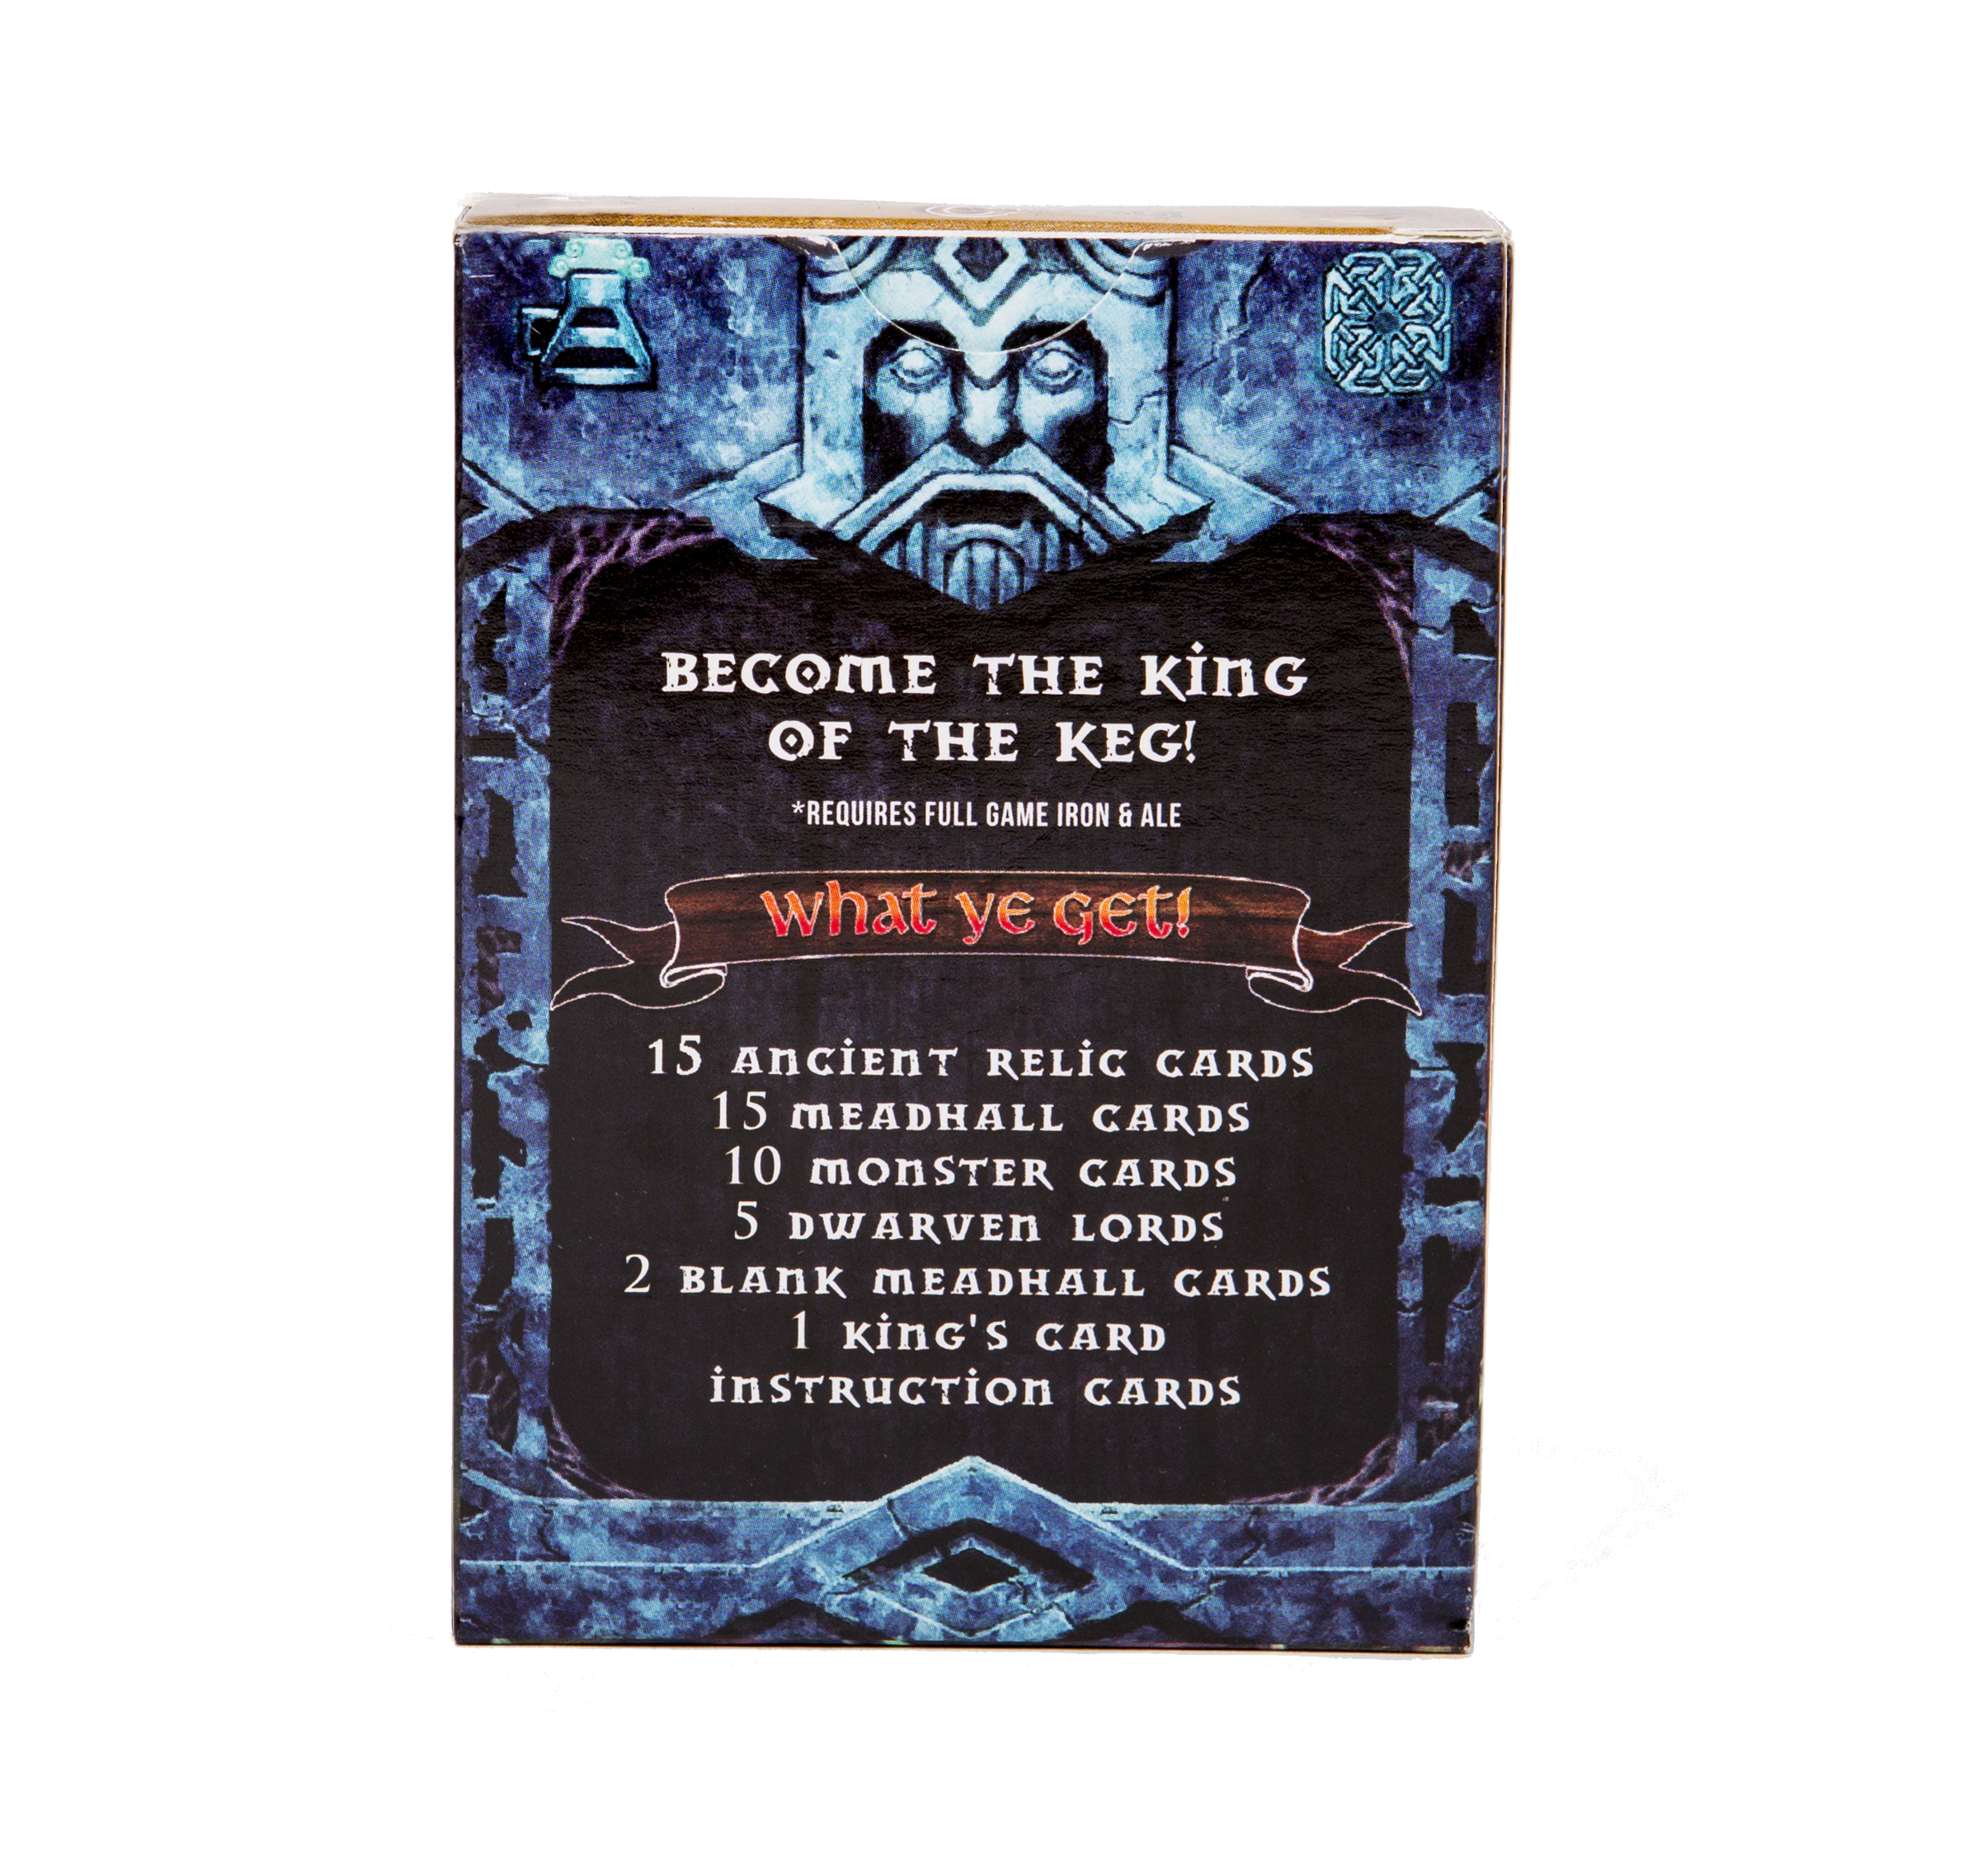 Iron & Ale King of the Keg Expansion Box Back.jpg